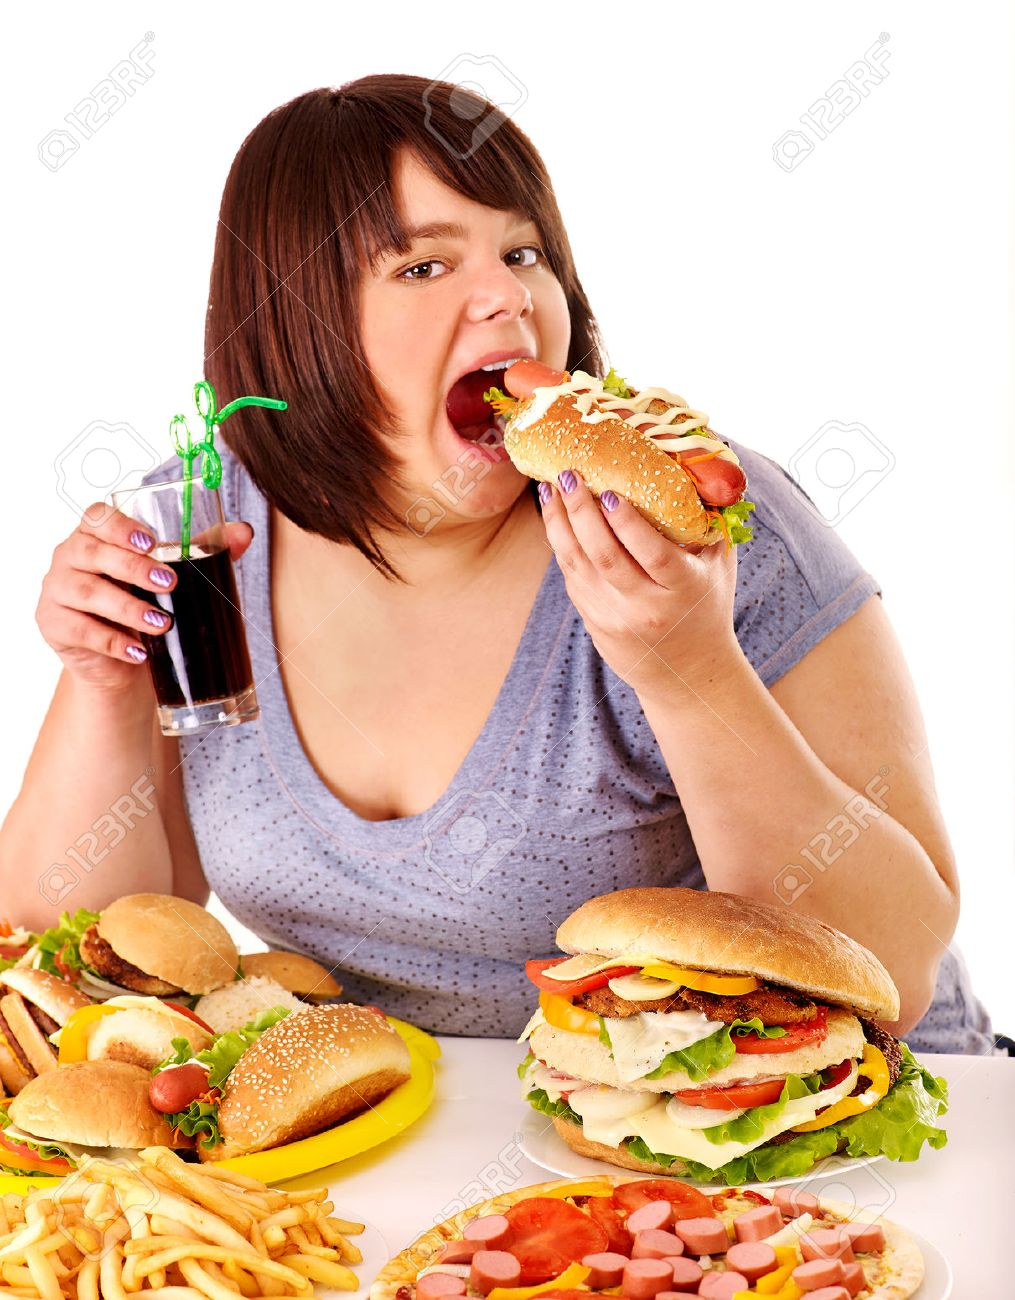 34389921-overweight-woman-eating-fast-fo